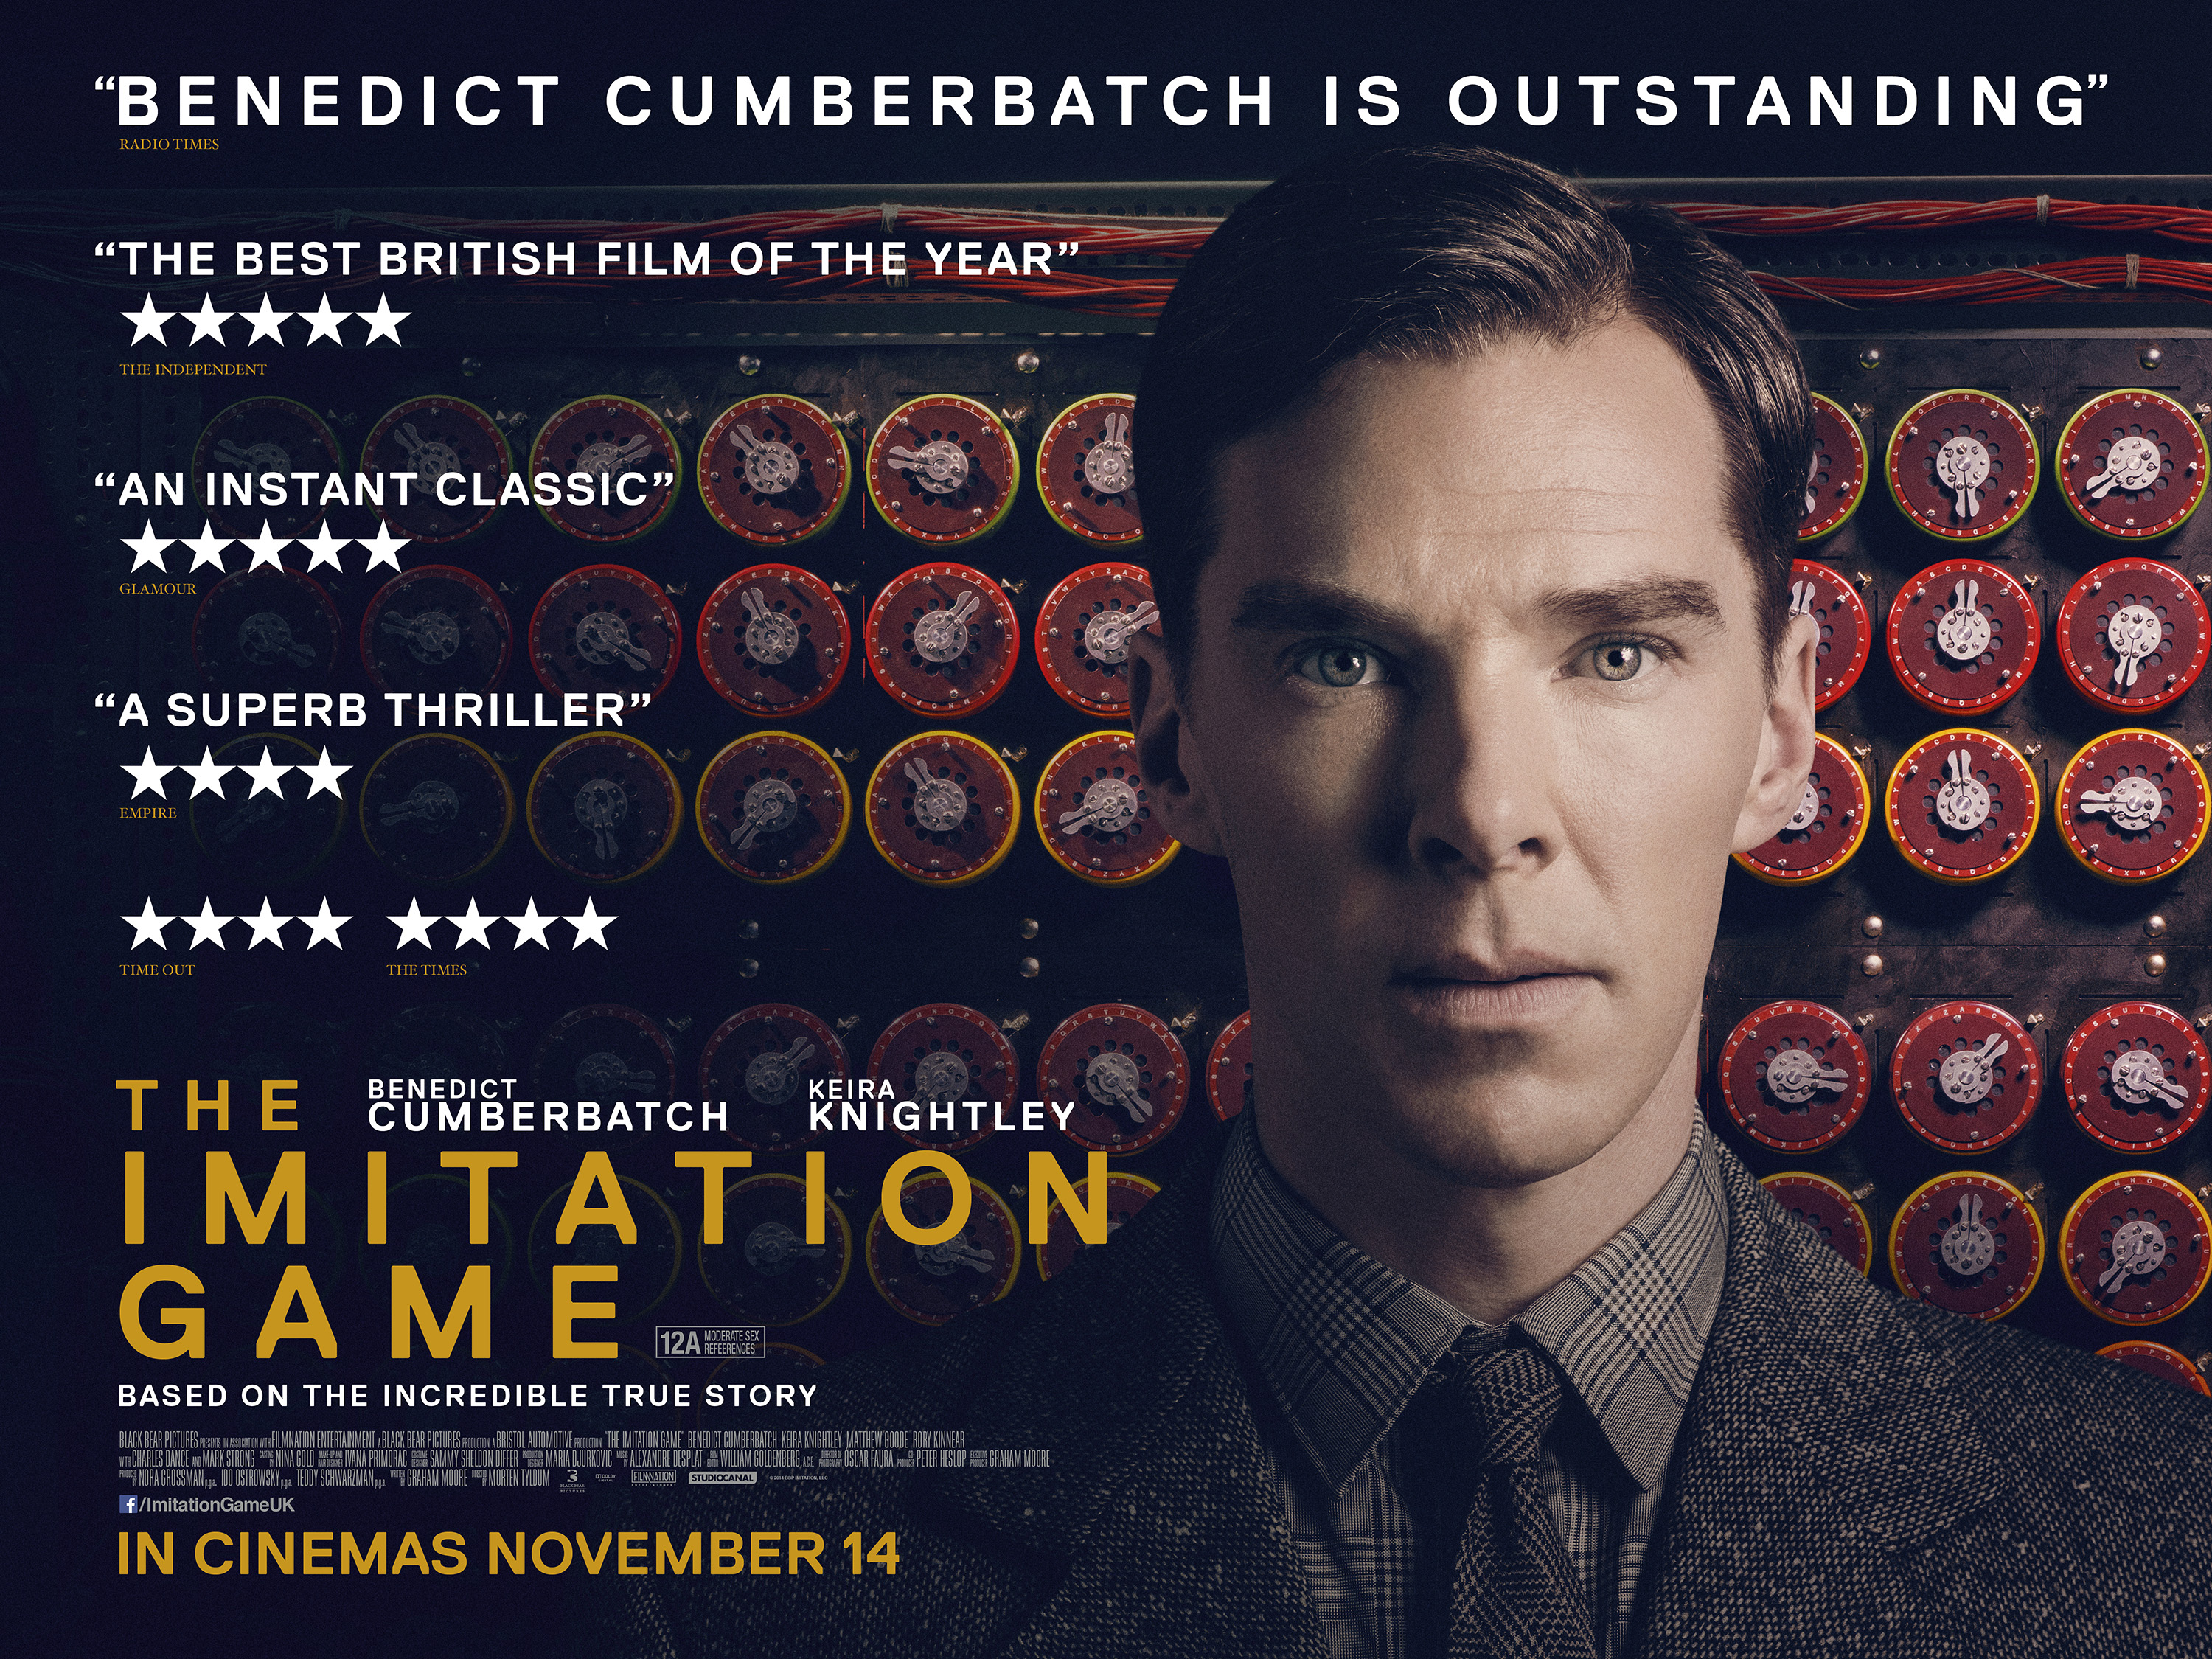 The Imitation Game Final Poster - HeyUGuys